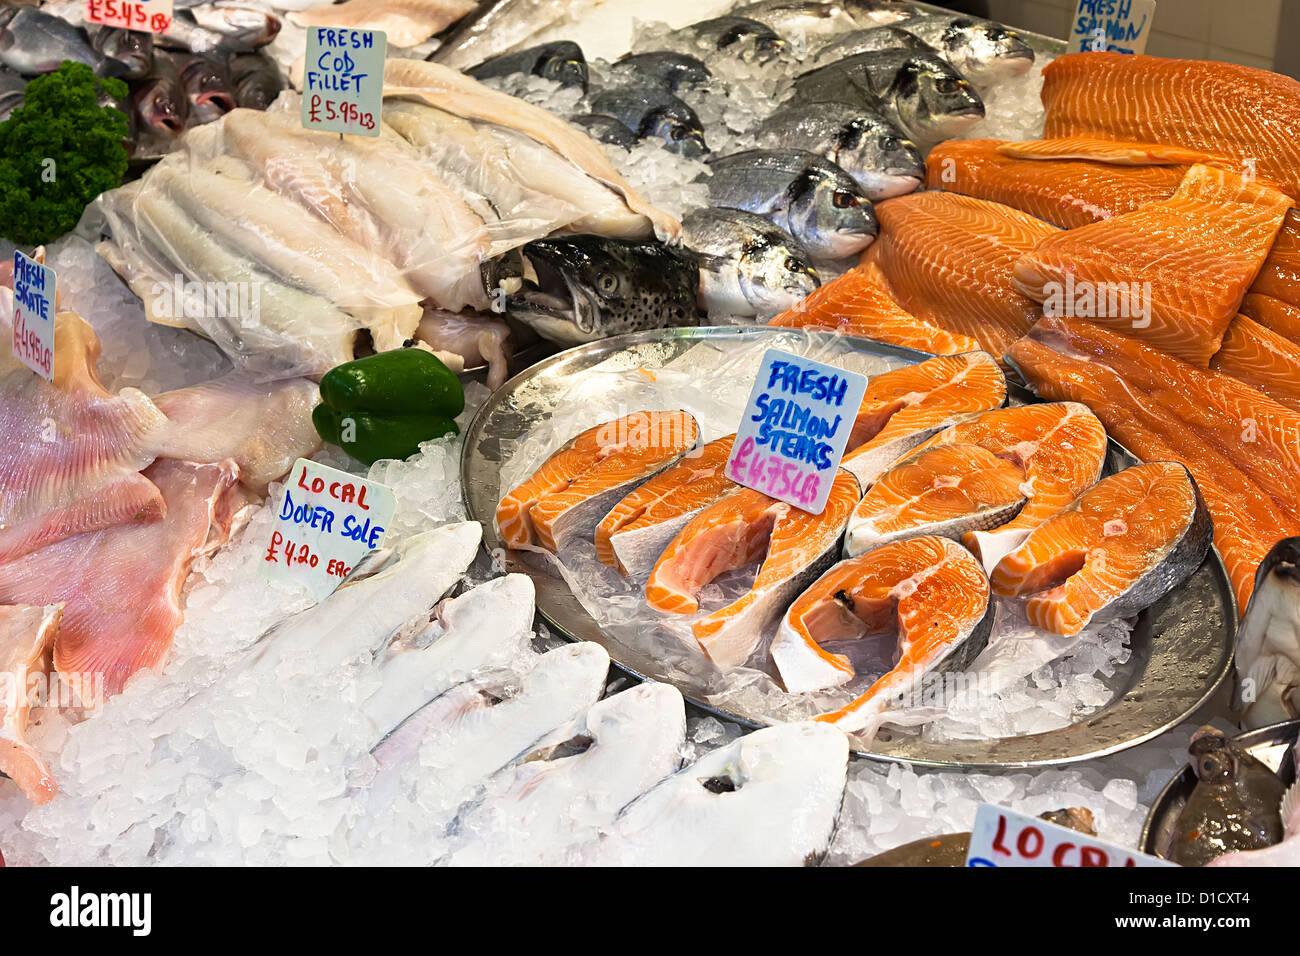 Fresh fish on sale on central market fishmonger stall, St Helier, Jersey, Channel Islands, UK - Stock Image